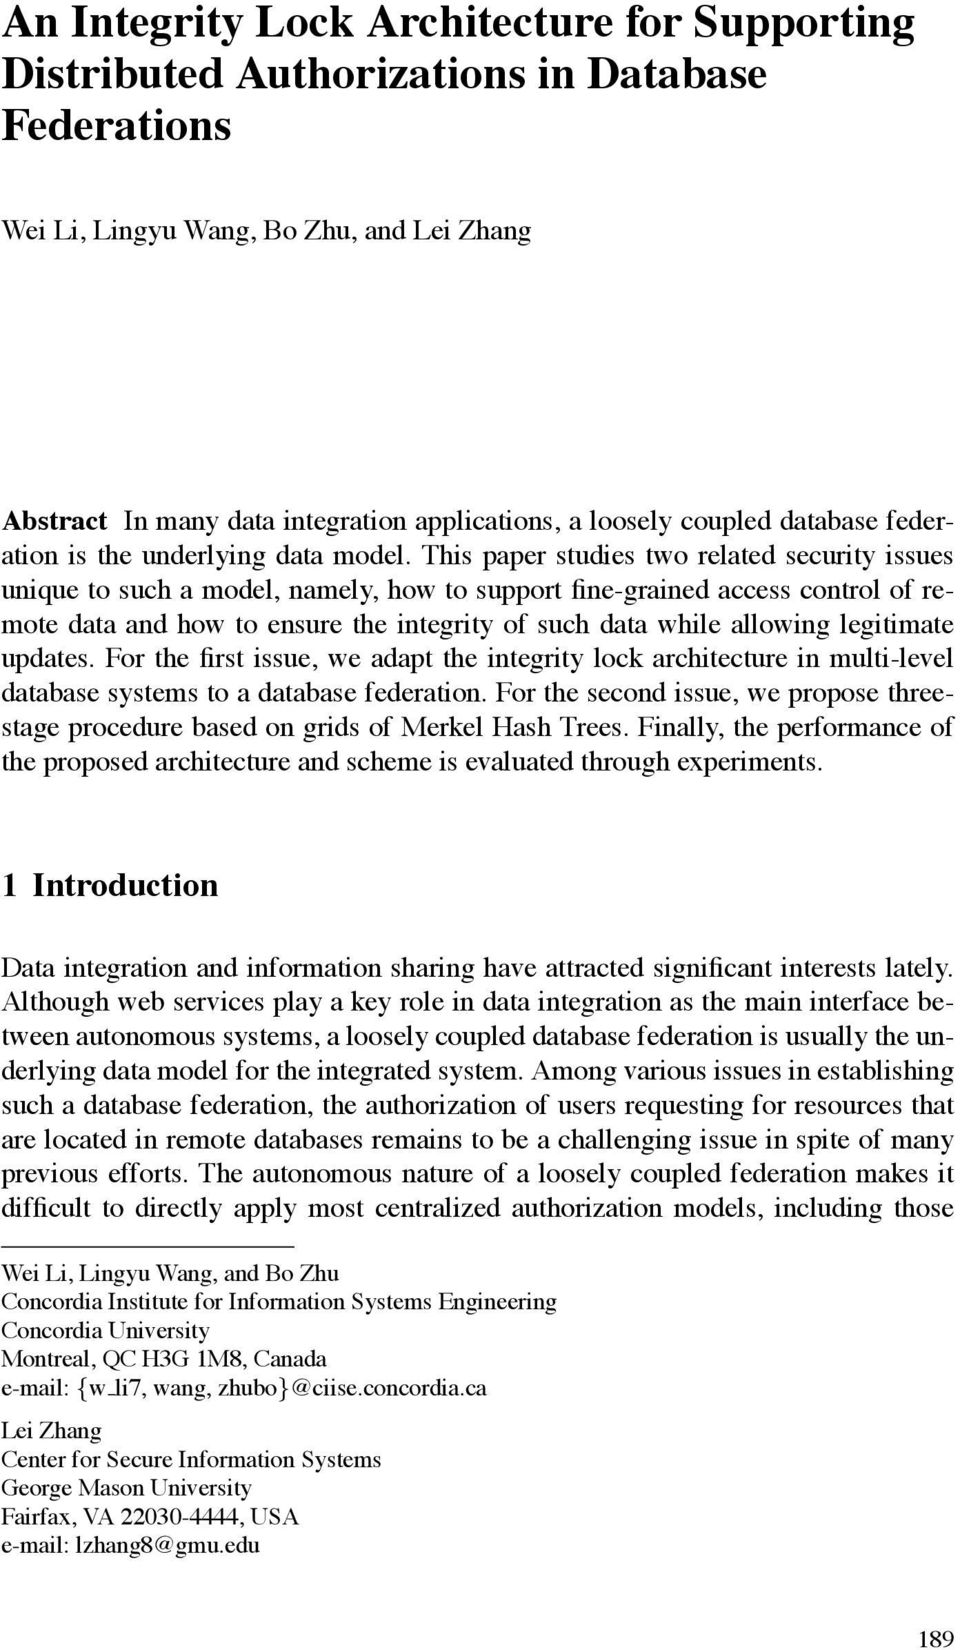 An Integrity Lock Architecture For Supporting Distributed Database Security And Dbms This Paper Studies Two Related Issues Unique To Such A Model Namely How